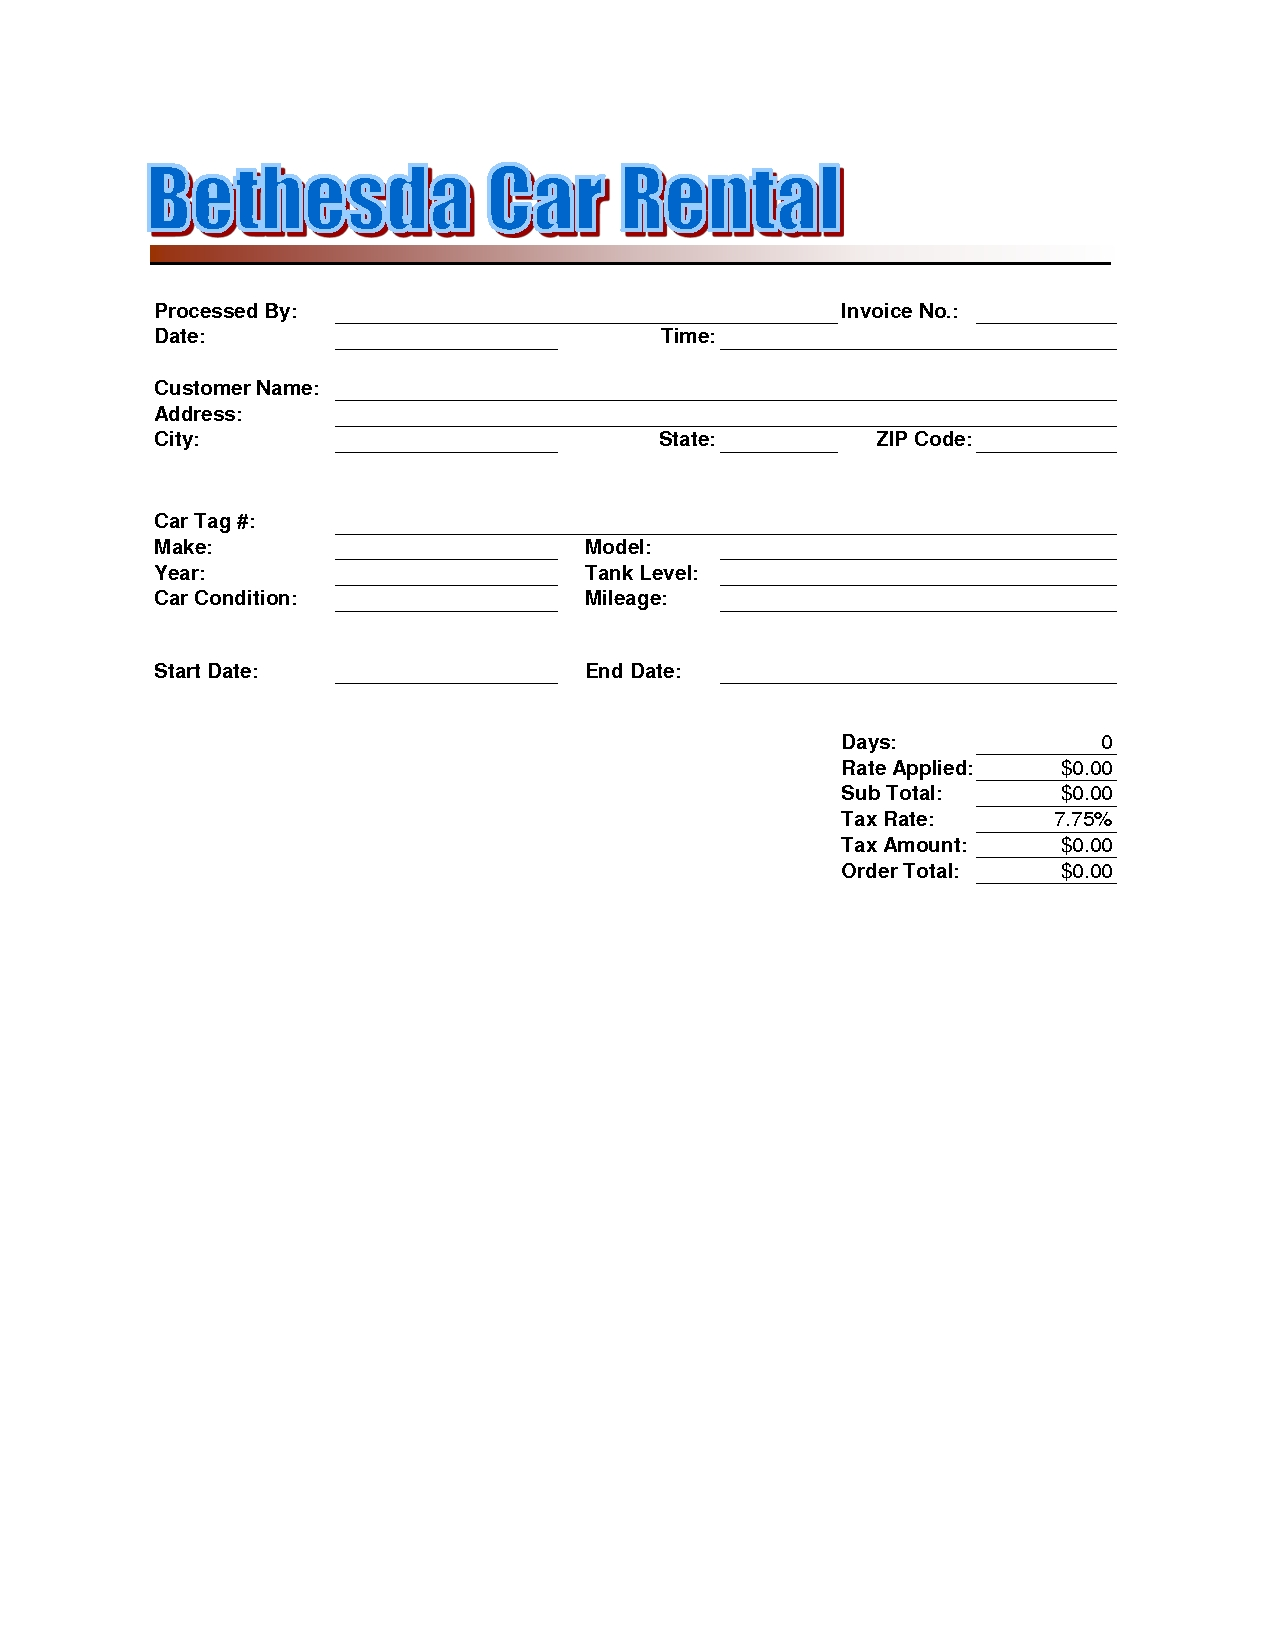 car rental invoice sample 19 best photos of rent a car invoice template car rental invoice 1275 X 1650